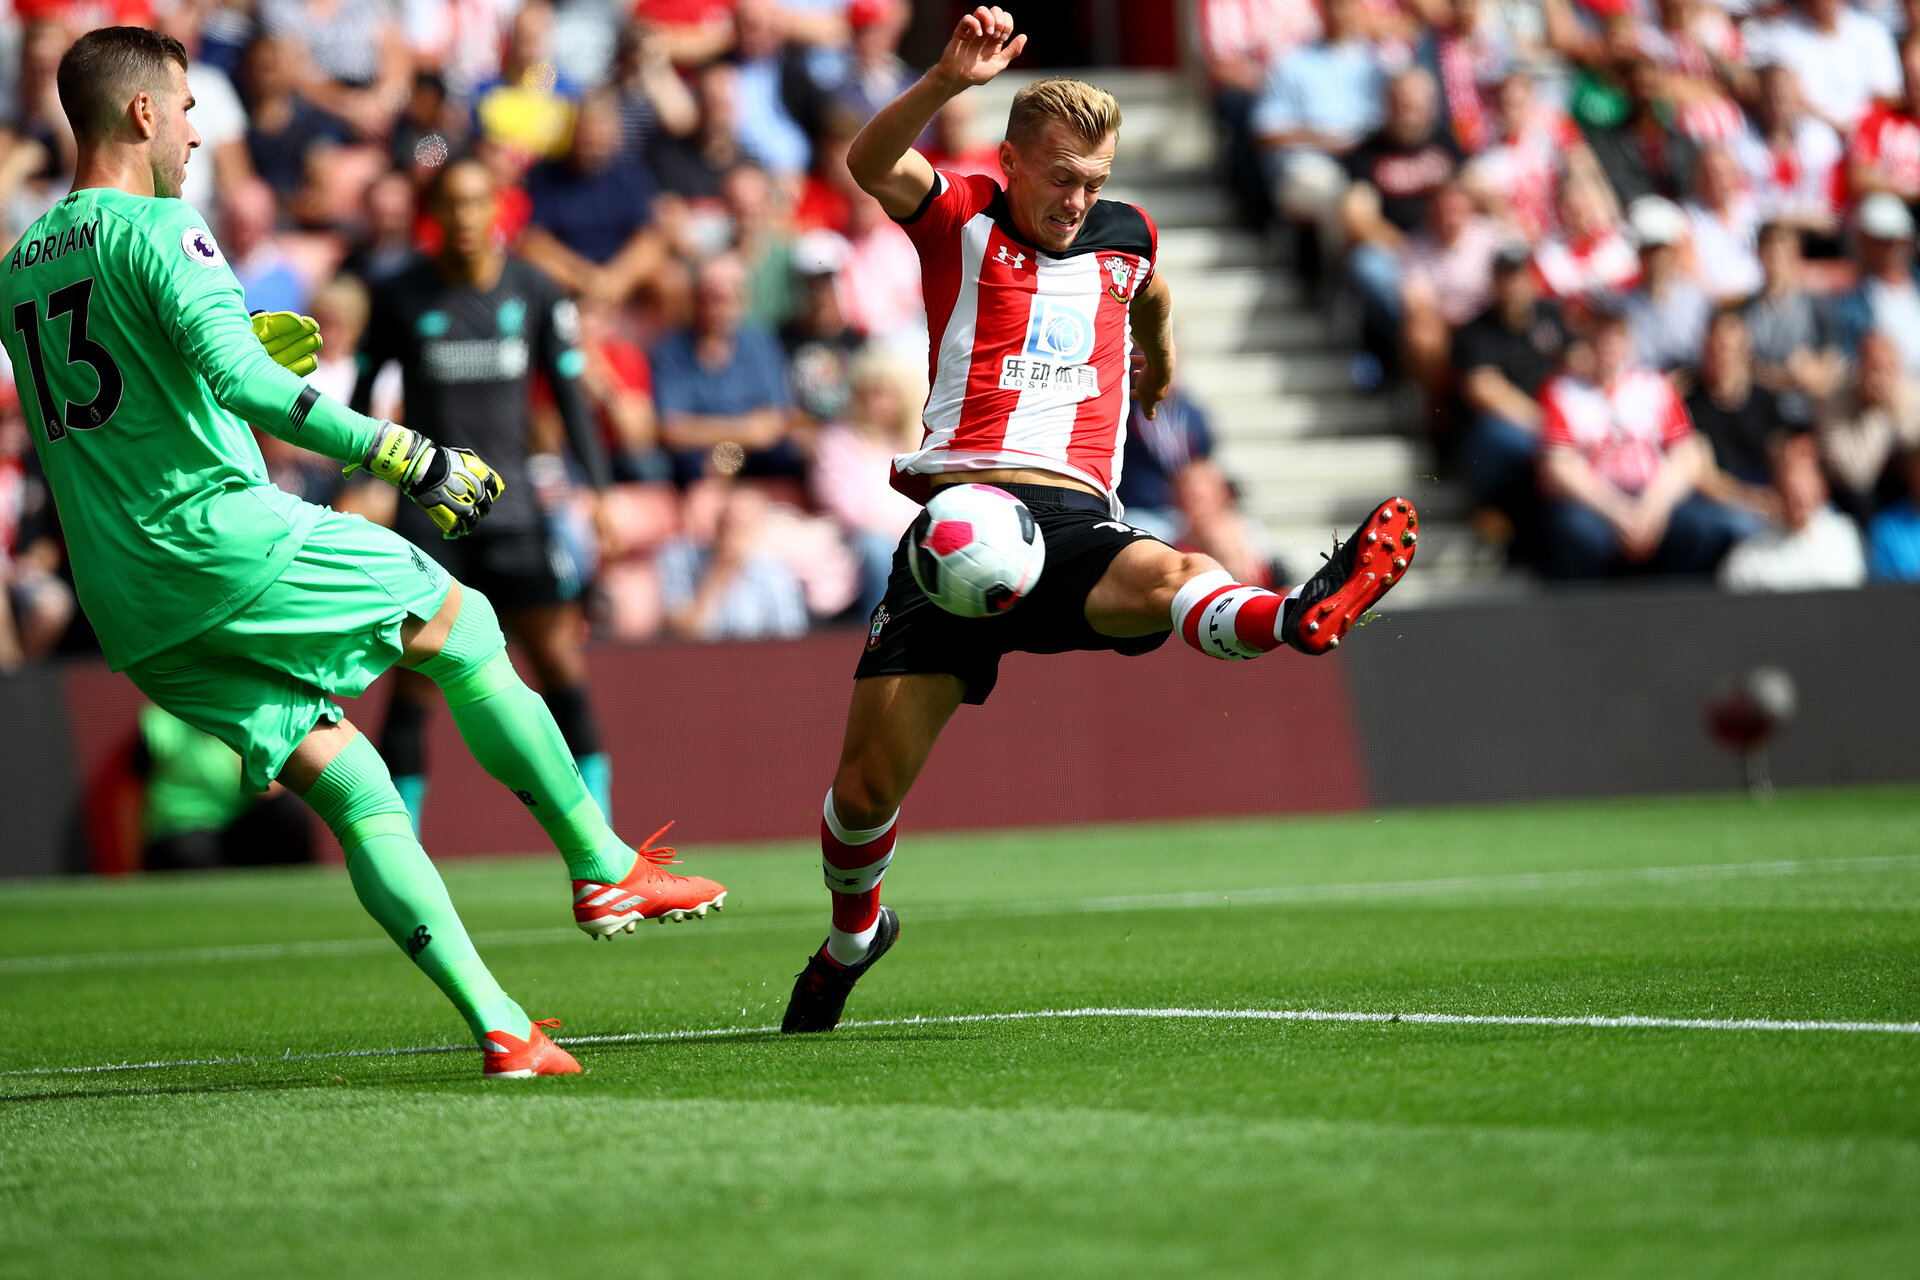 SOUTHAMPTON, ENGLAND - AUGUST 17: James Ward-Prowse(R) of Southampton closes down Adrian of Liverpool during the Premier League match between Southampton FC and Liverpool FC at St Mary's Stadium on August 17, 2019 in Southampton, United Kingdom. (Photo by Matt Watson/Southampton FC via Getty Images)